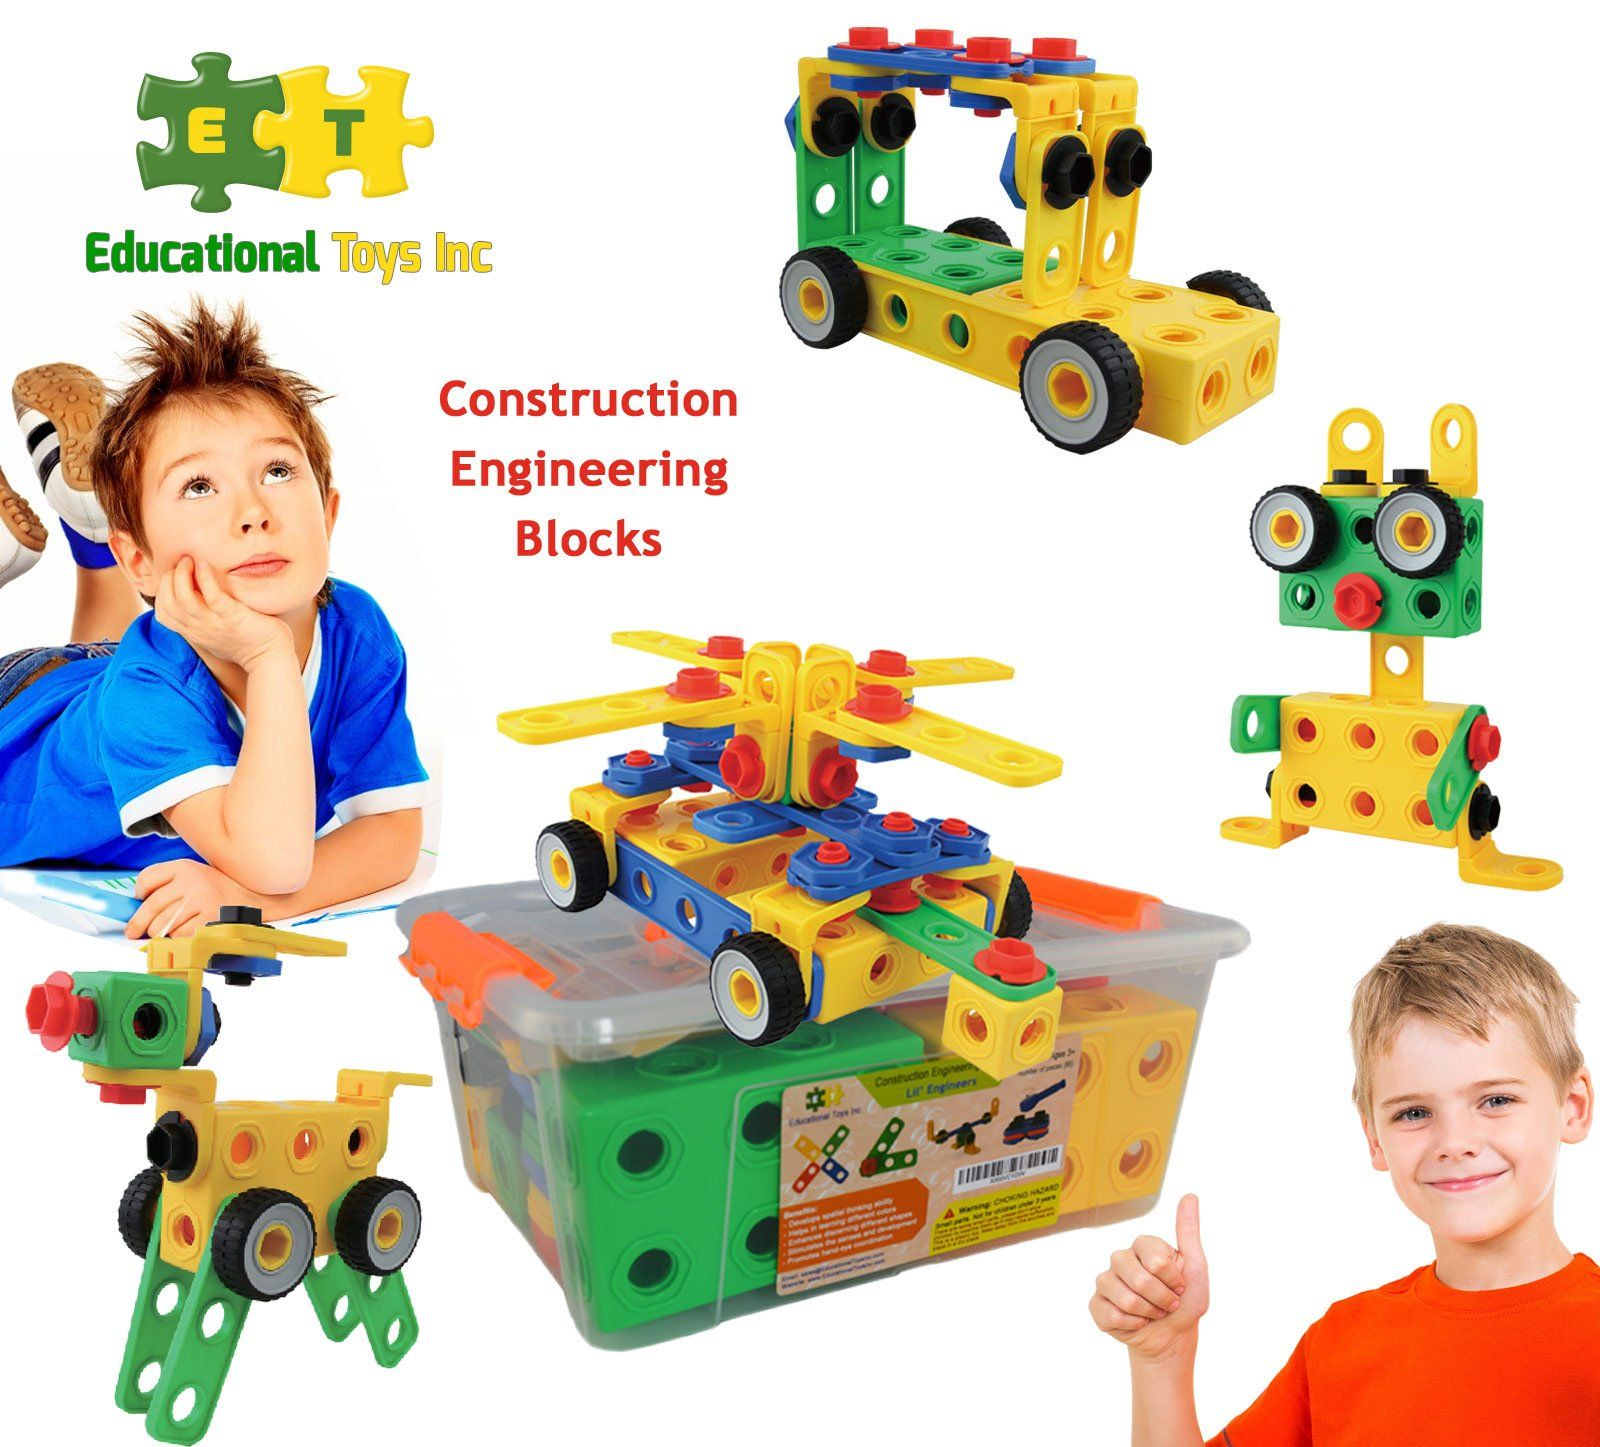 Educational Toys Construction Engineering Blocks By ETI Toys for